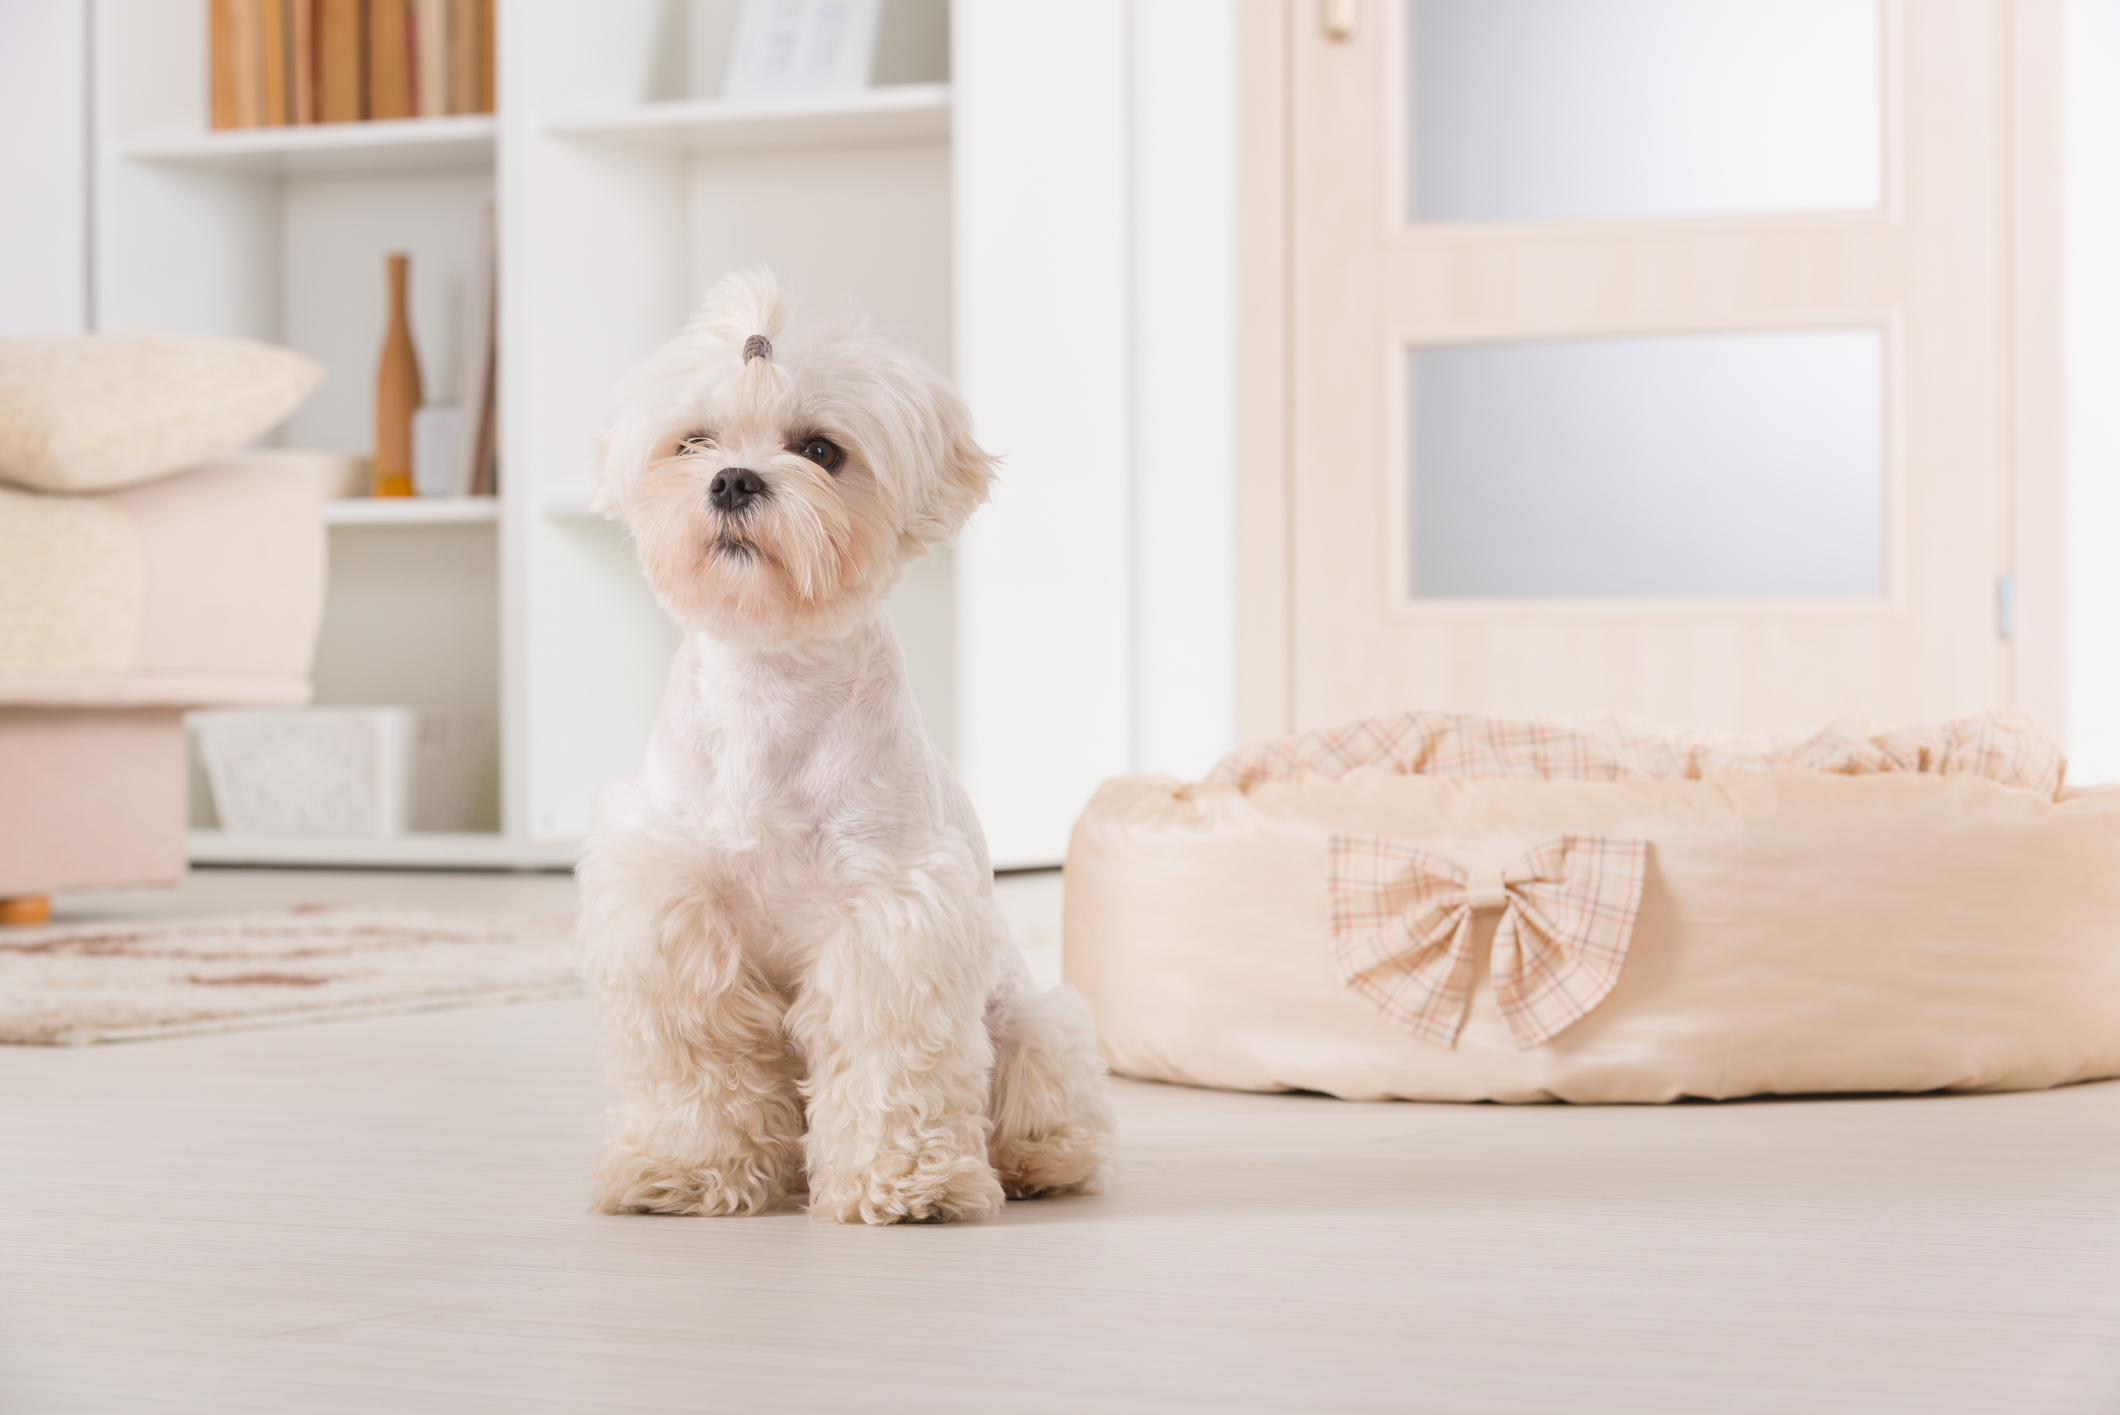 Keep Pets Off Furniture by Providing Their Own Area